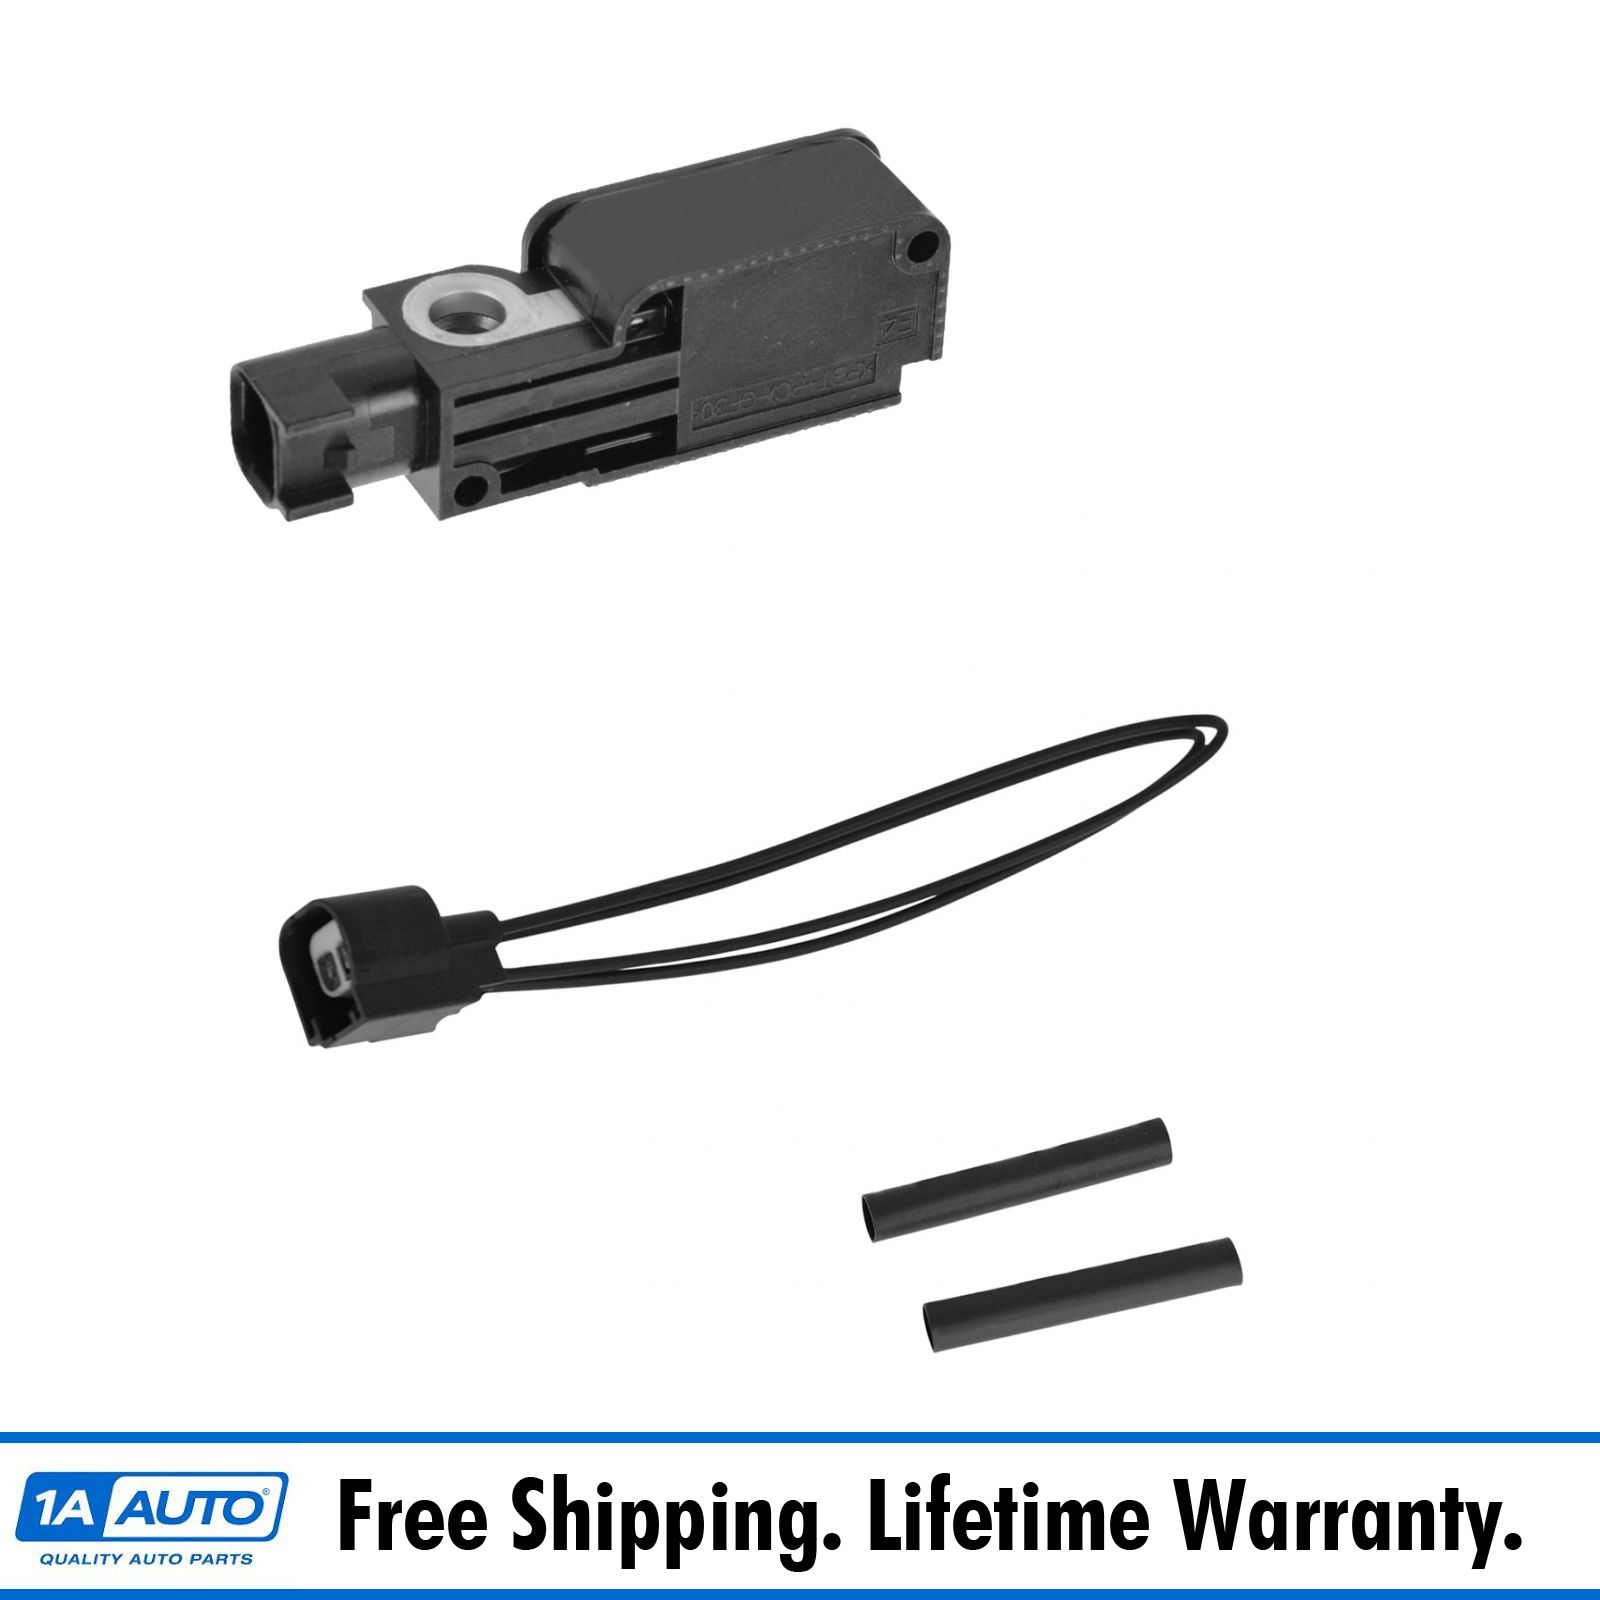 details about oem airbag impact crash sensor \u0026 harness front for ford f150 lincoln mark lt new Airbag Impact Sensor Wiring Harness